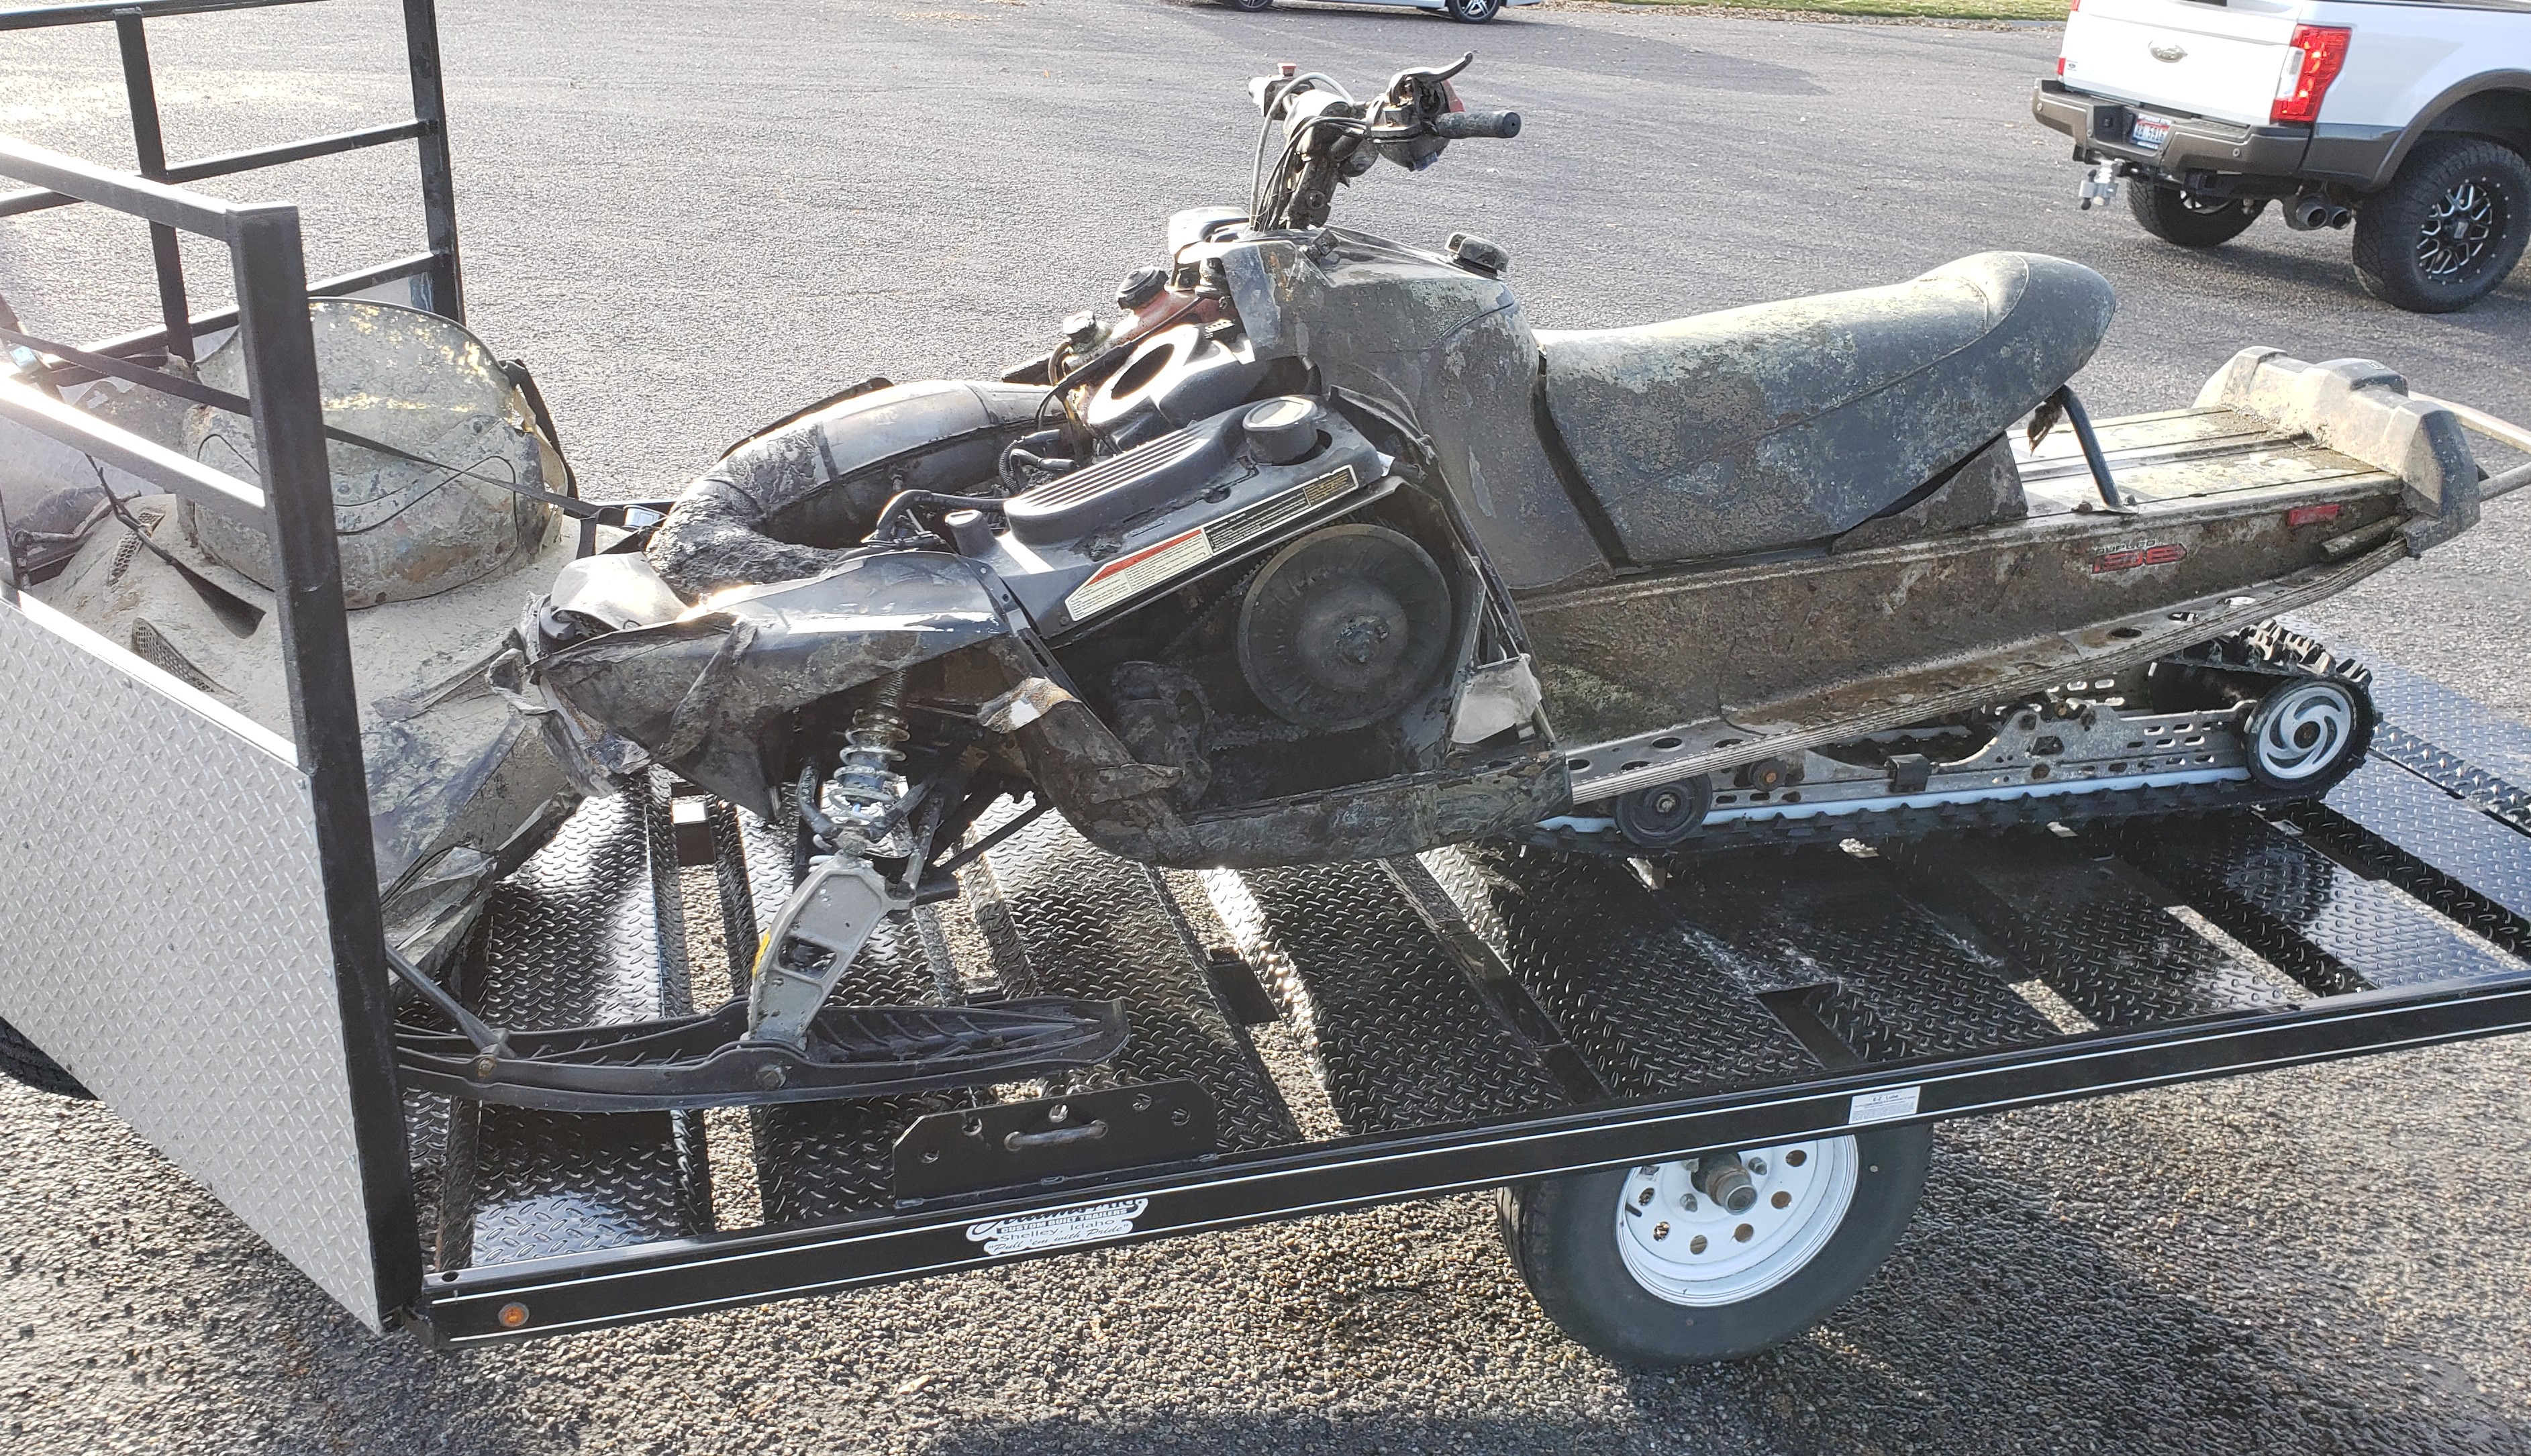 recovered snowmobile